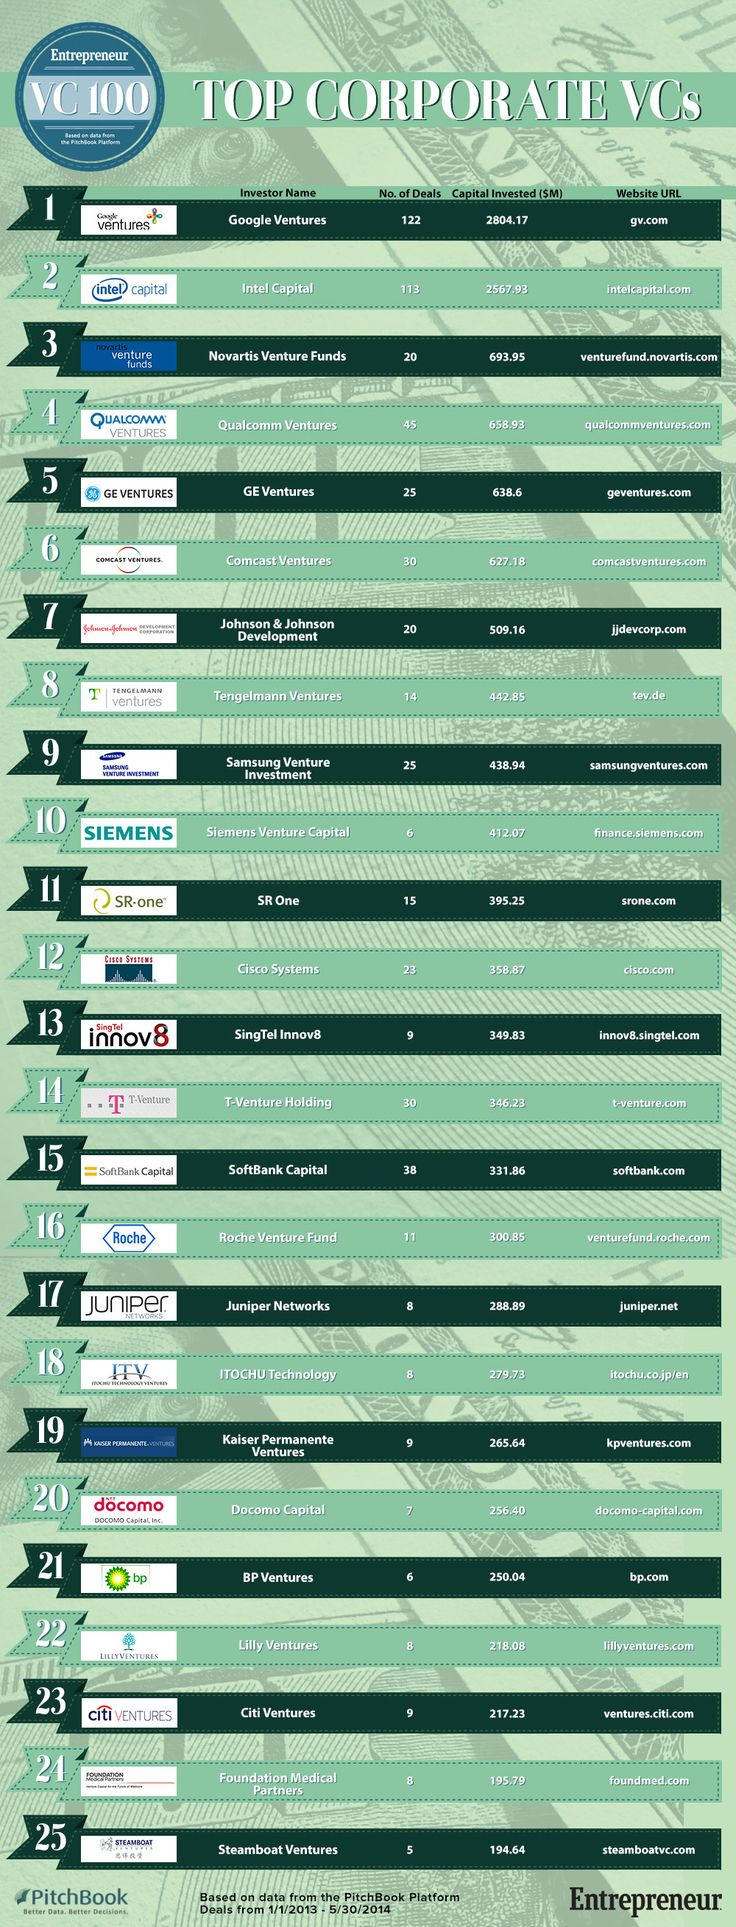 25 most active corporate VCs - #money